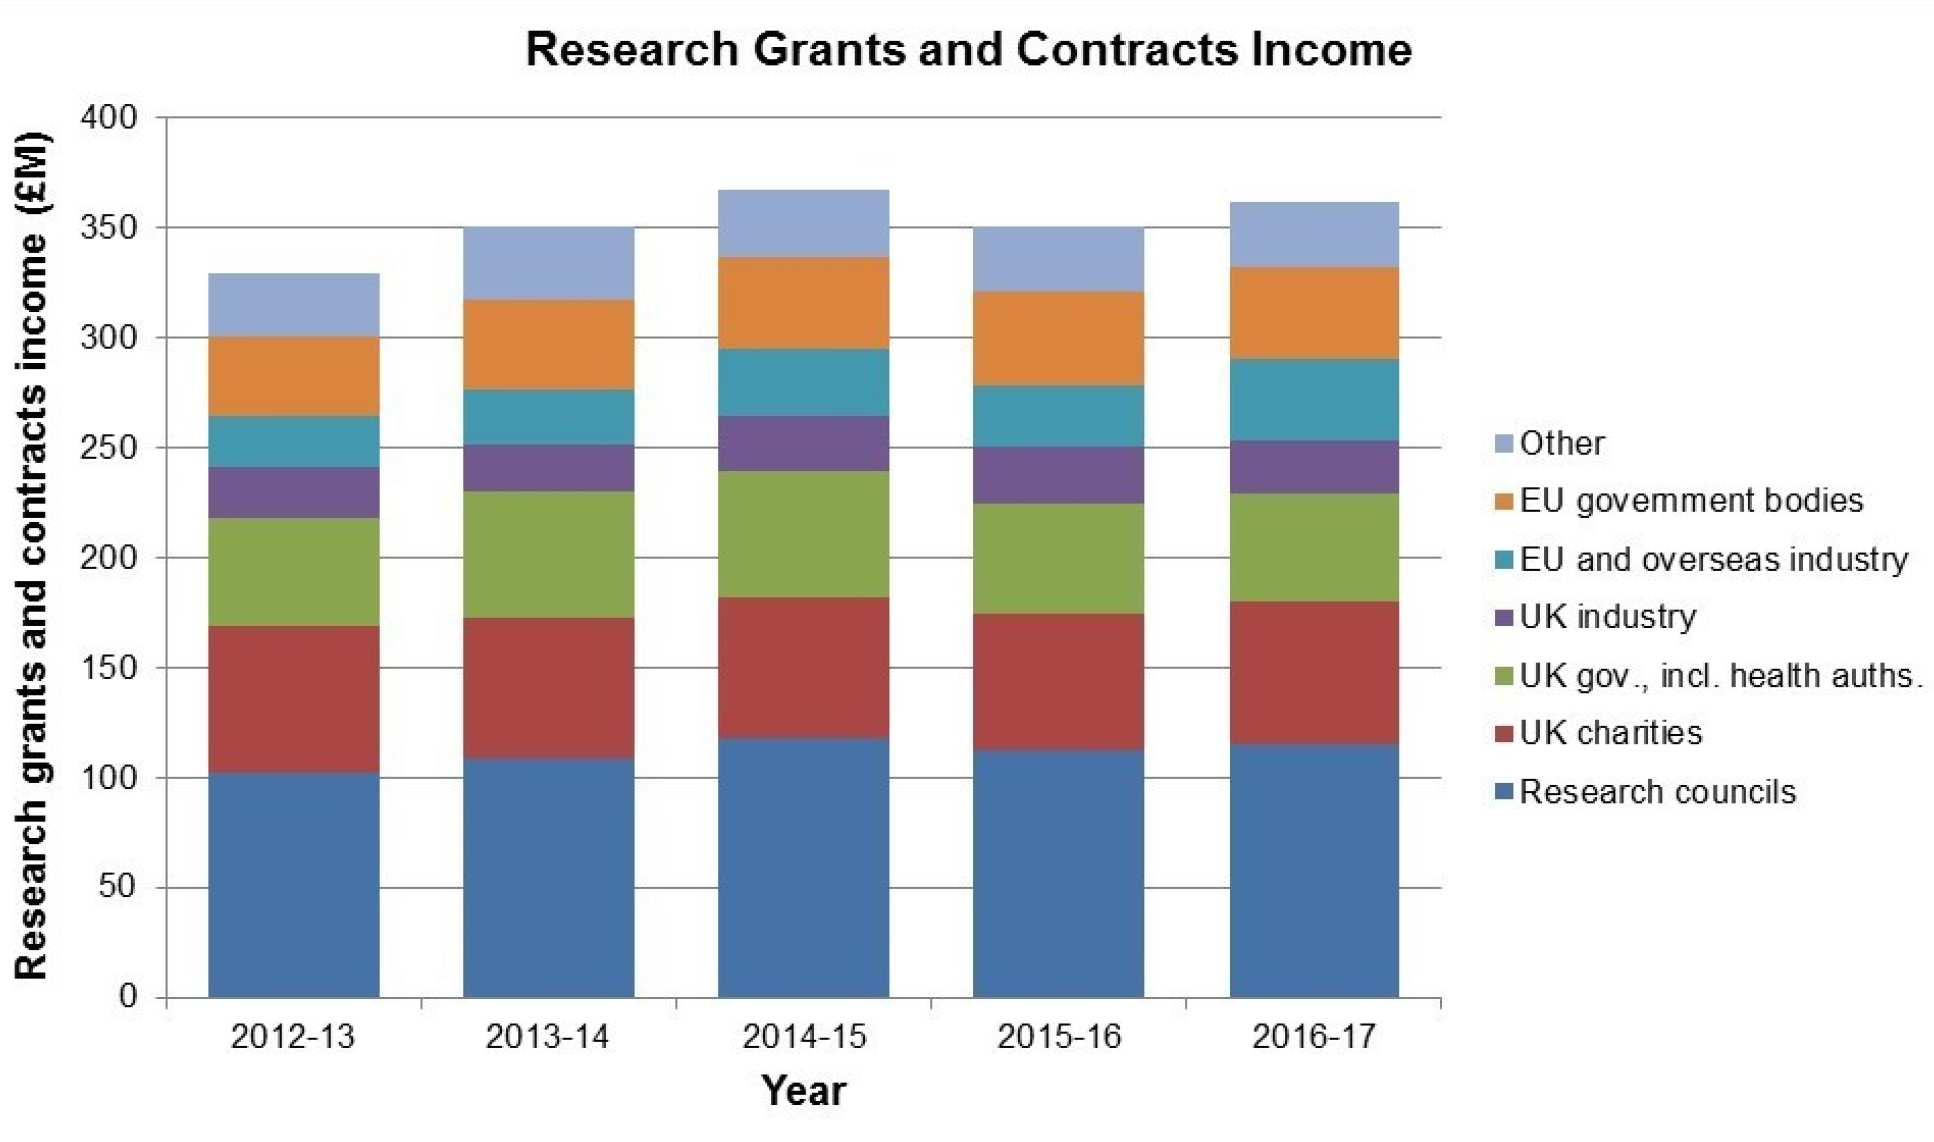 Research Grants and Contracts Income